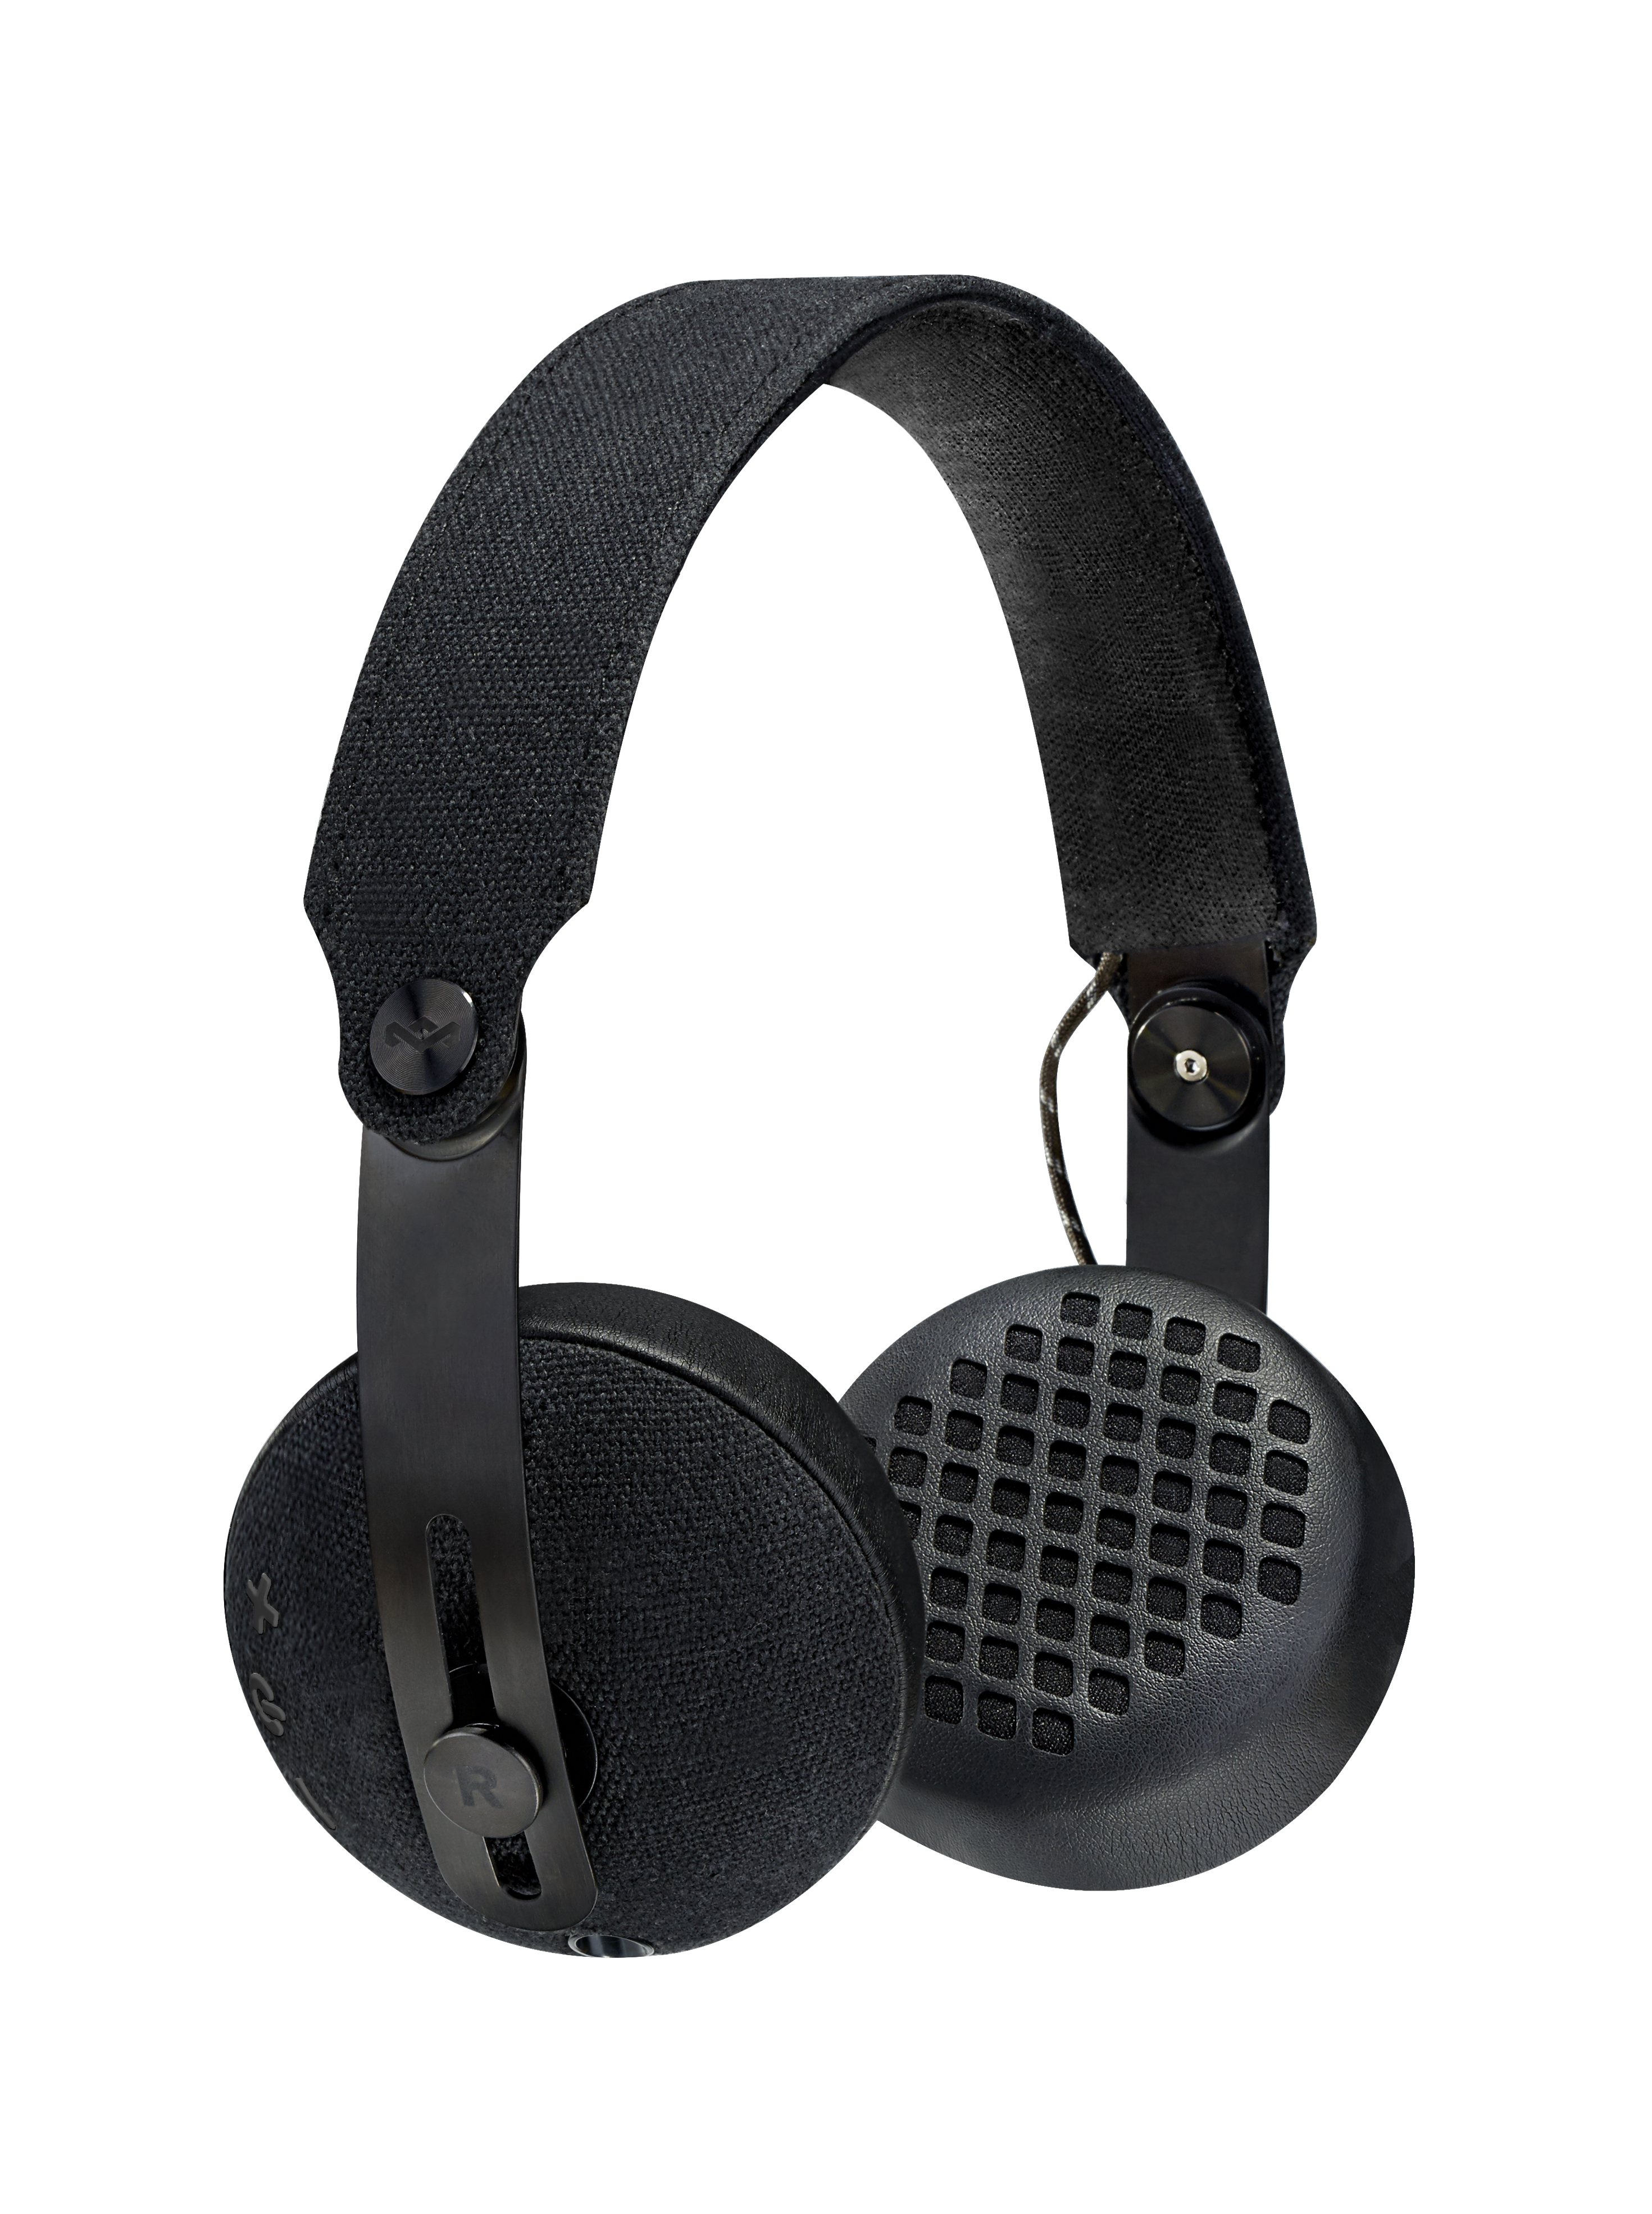 House Of Marley Rise Bt Headphones Maybe Thats Not A Telephone Socket Wiring The Are Very Comfortable To Wear And Secure Degree Though I Probably Wouldnt These While Went For Jog Sound